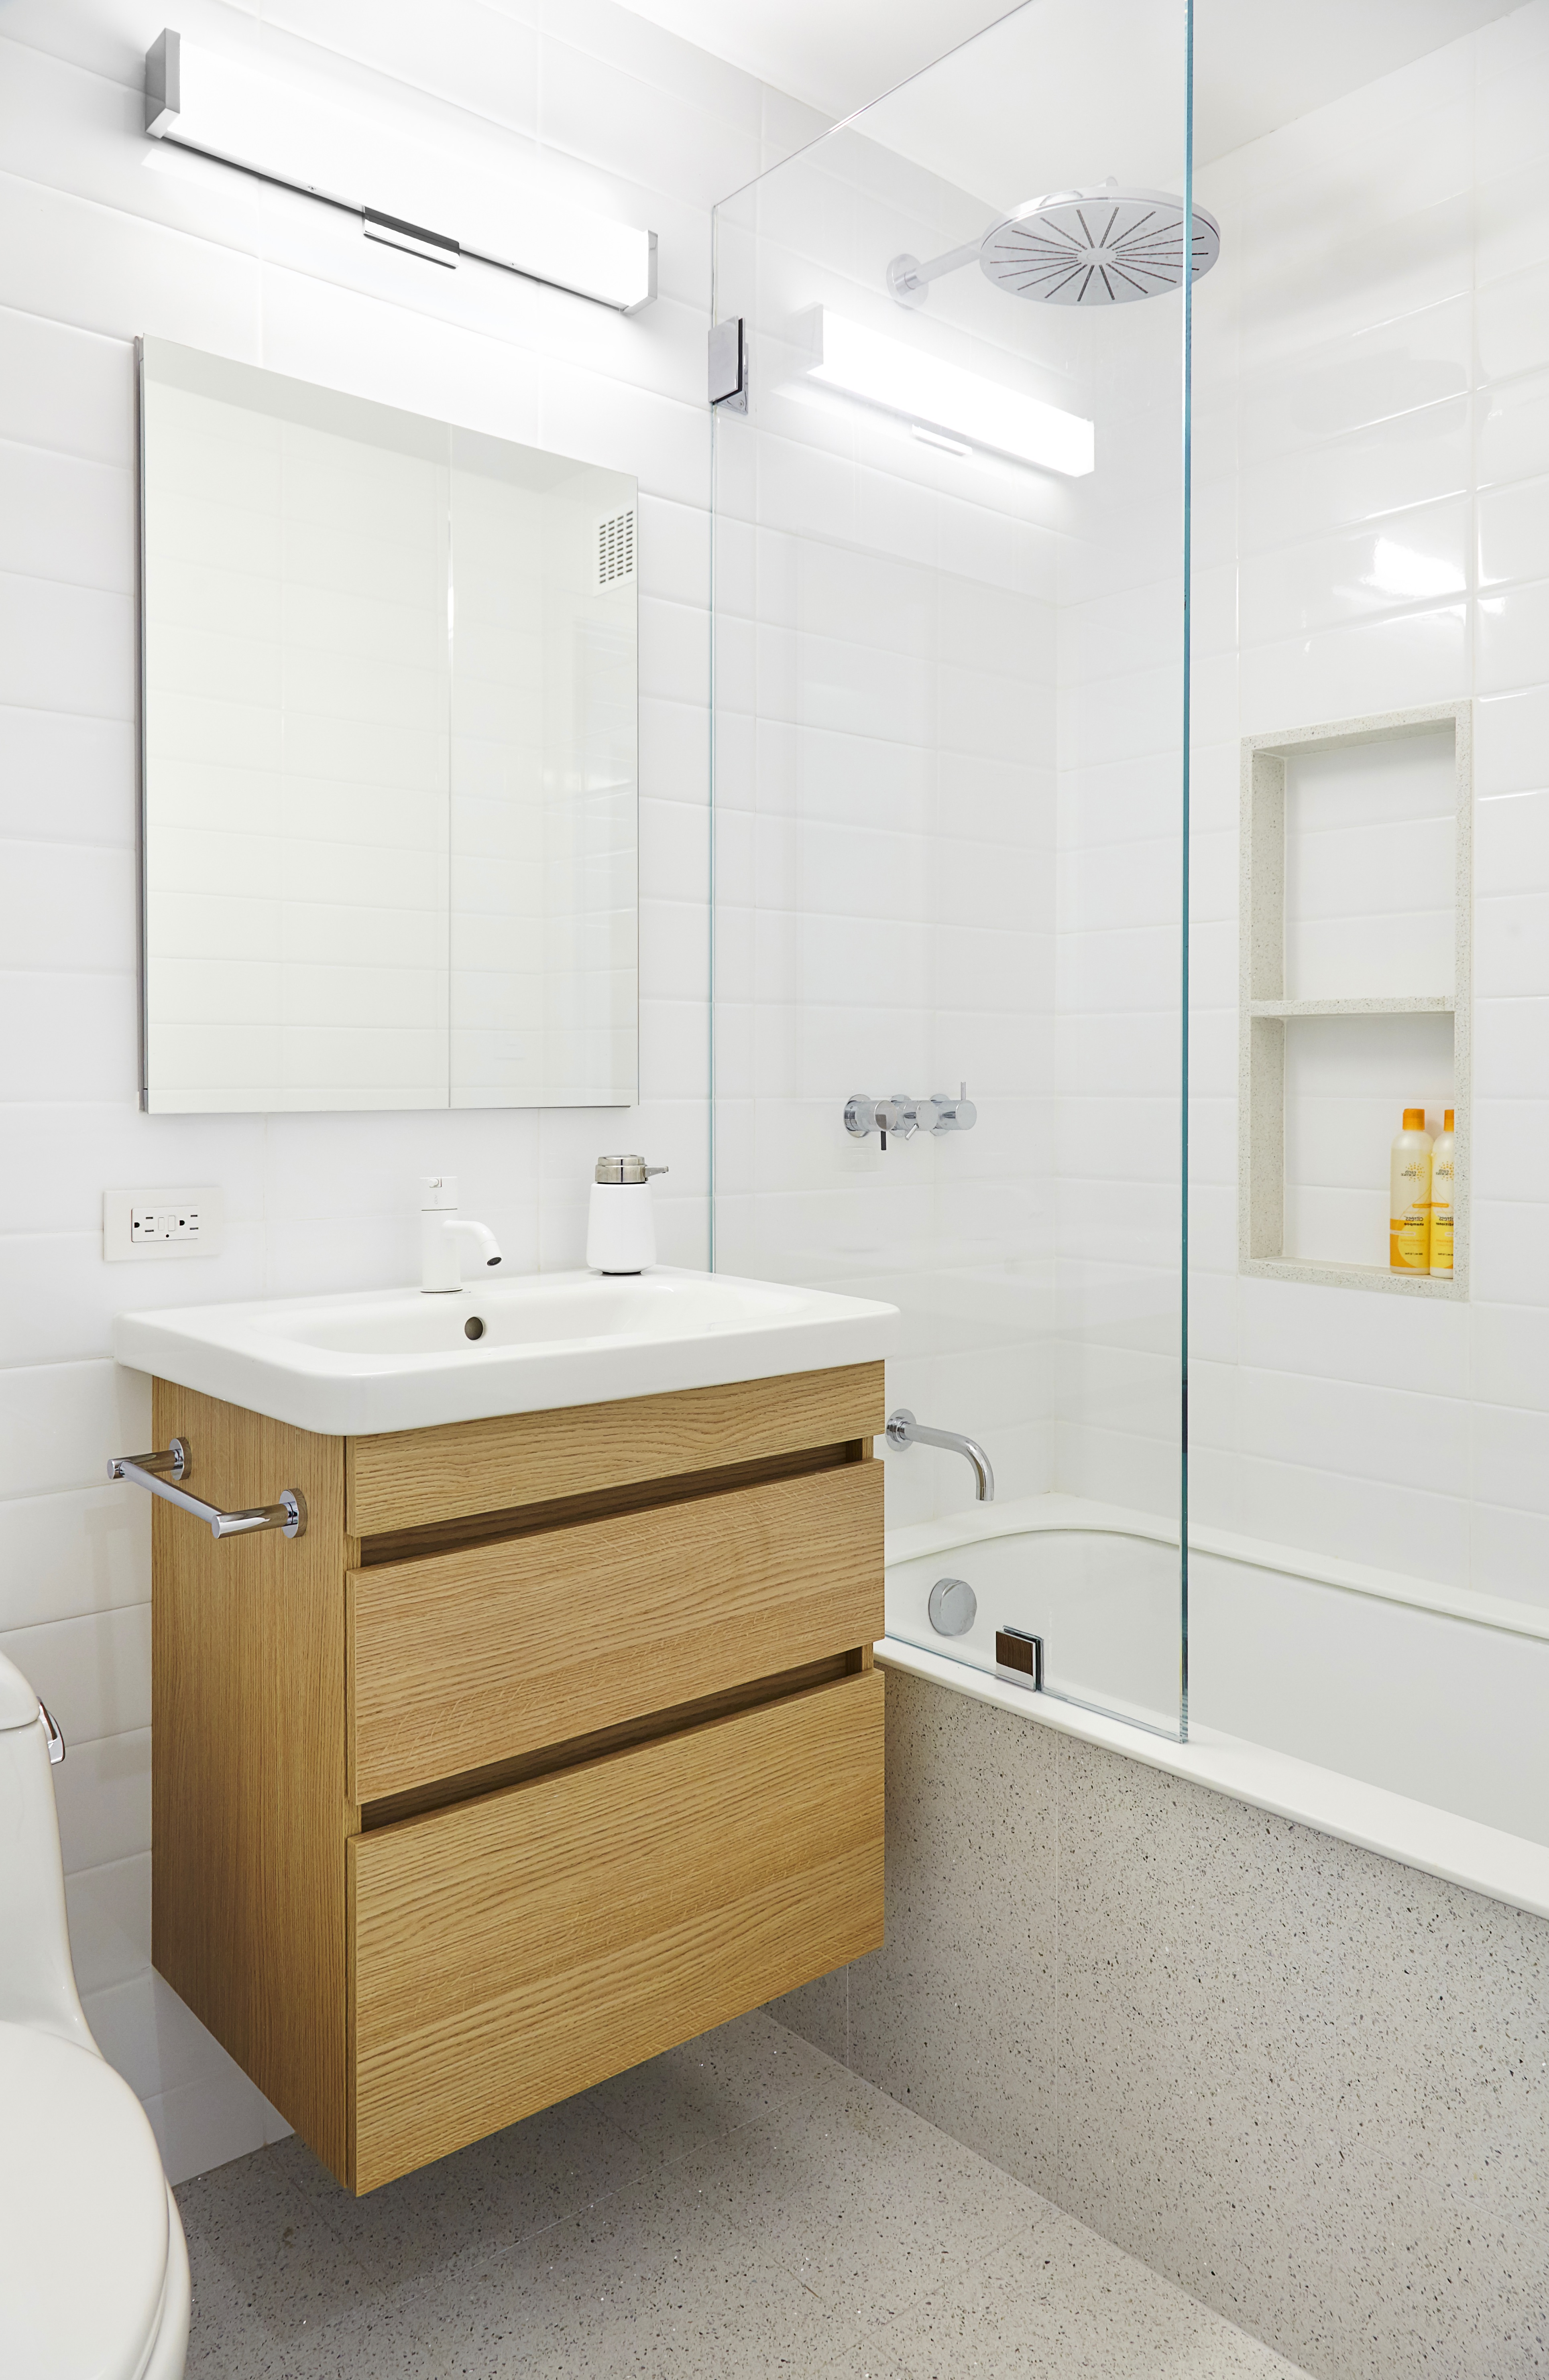 Light Colored Wood Floating Vanity Furniture For Small Contemporary Bathroom (View 17 of 18)